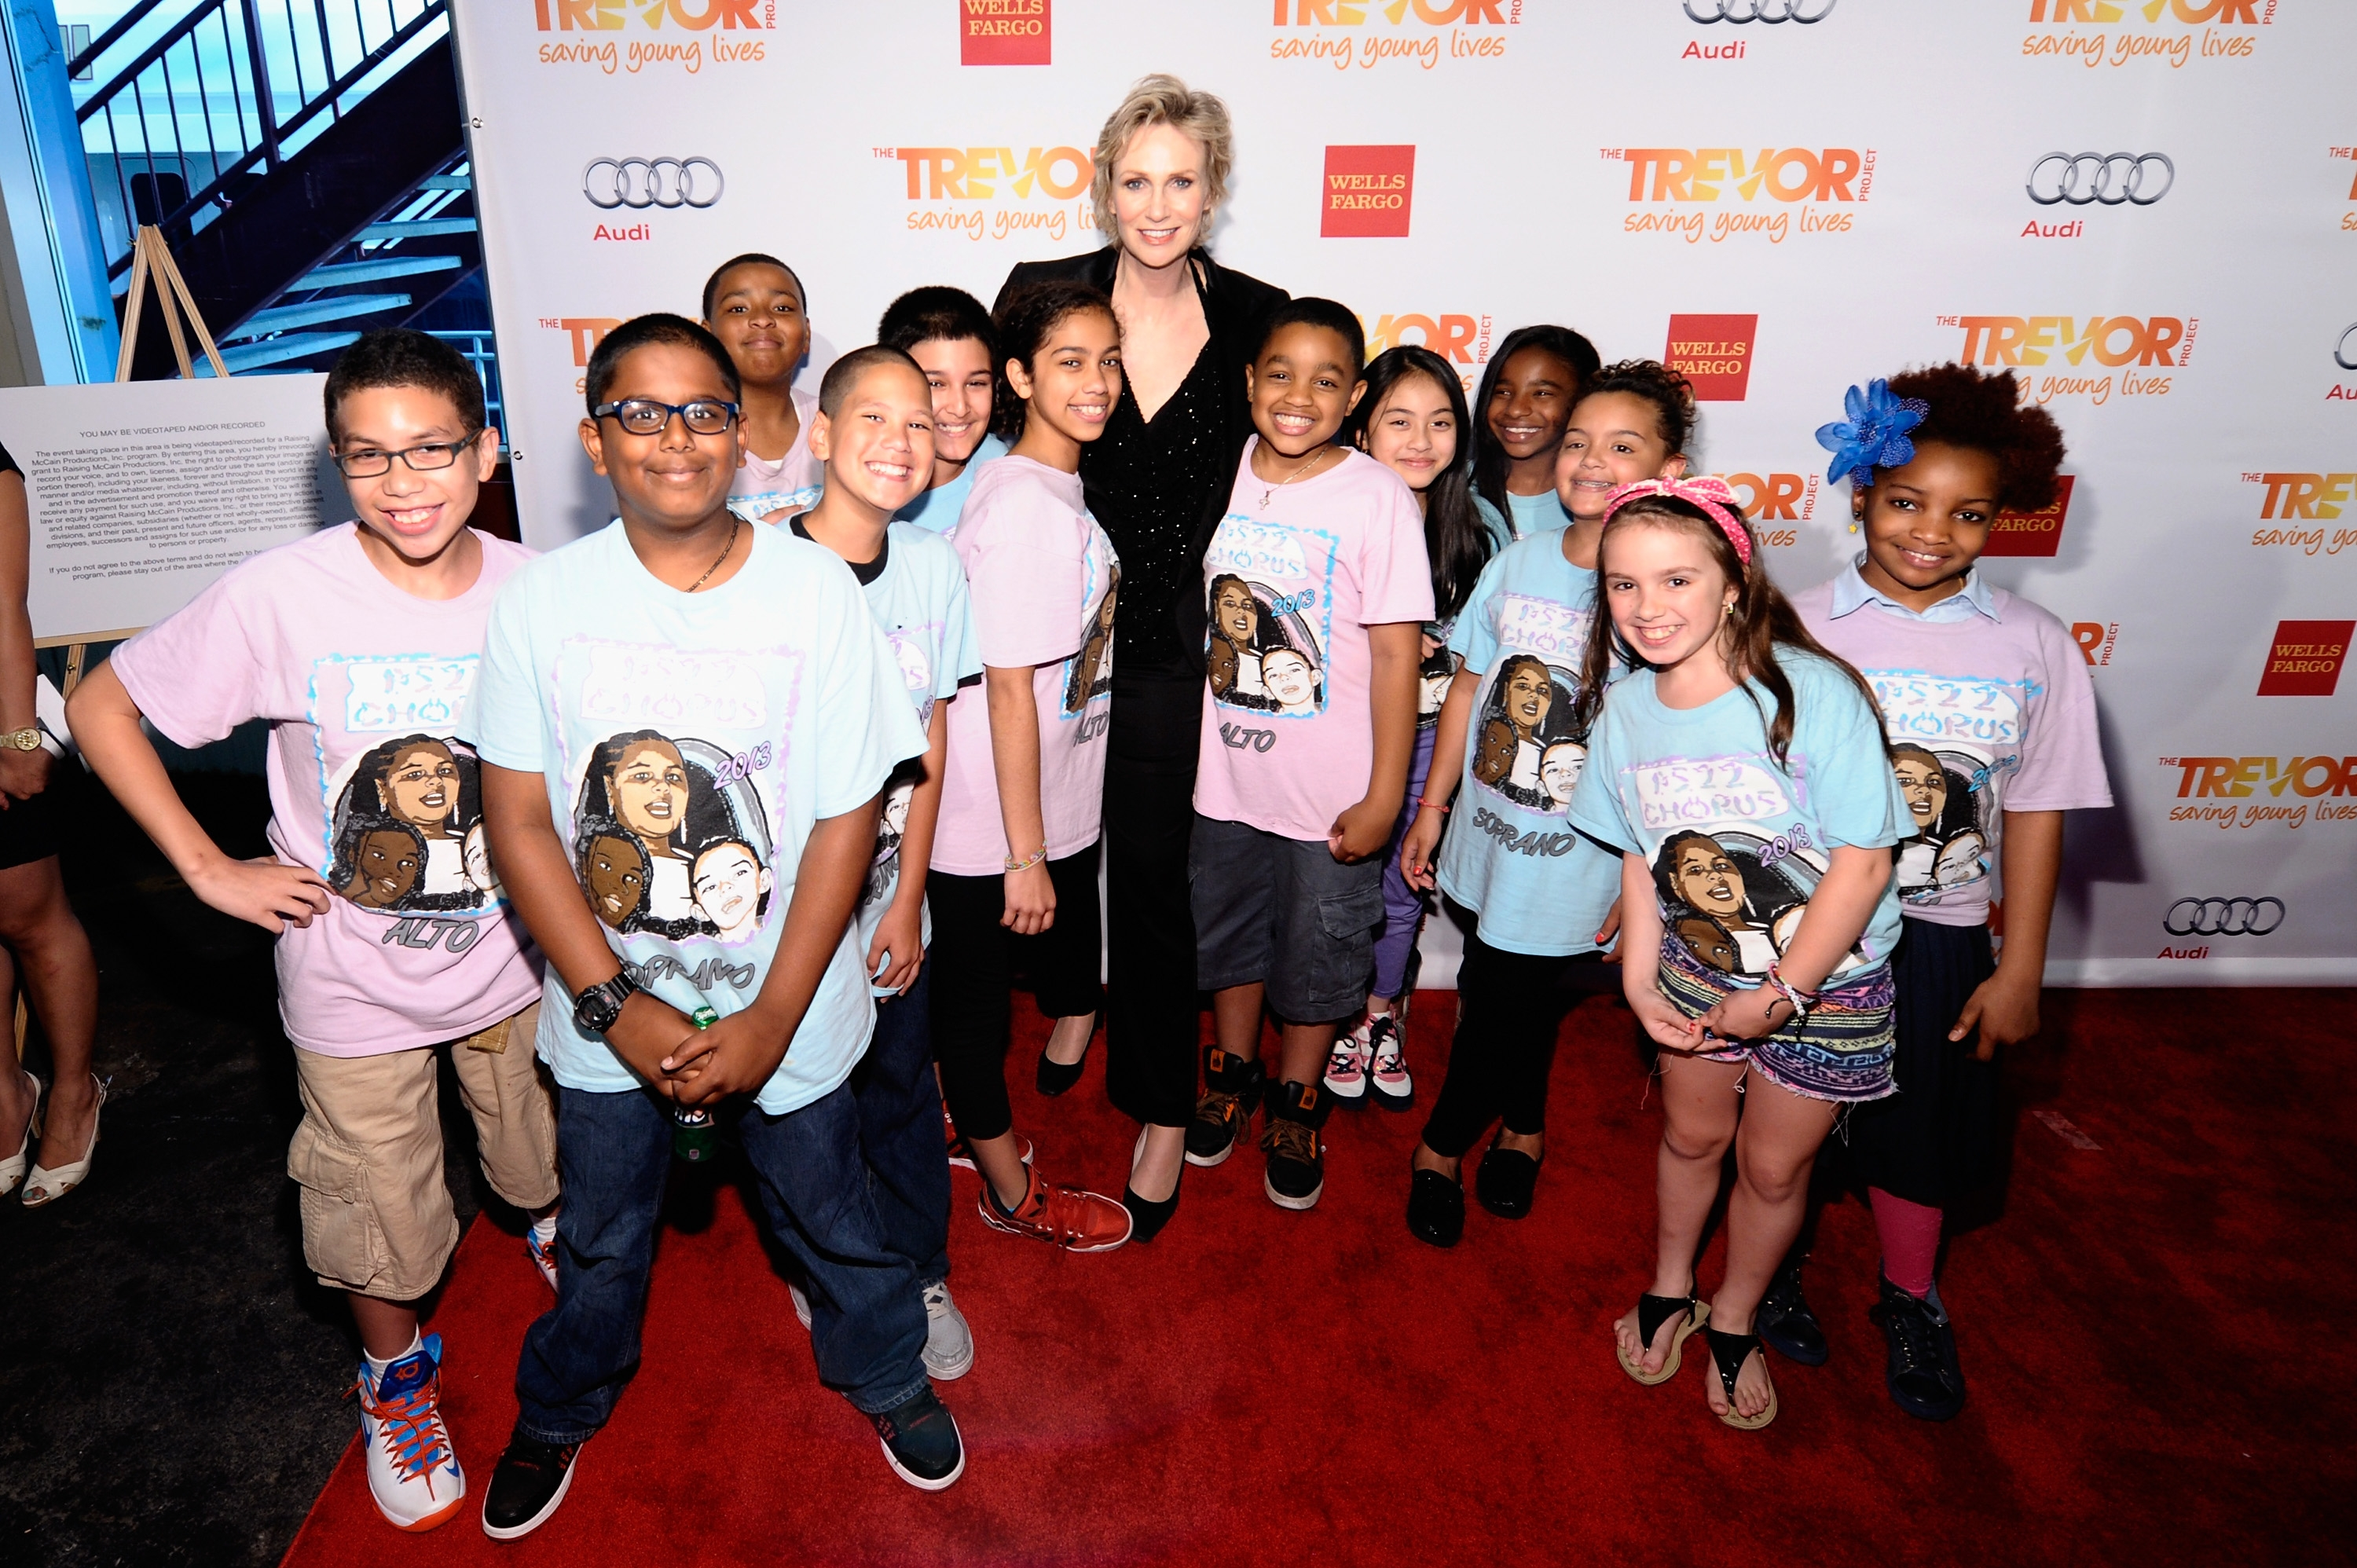 Jane Lynch & members of the PS22 Chorus